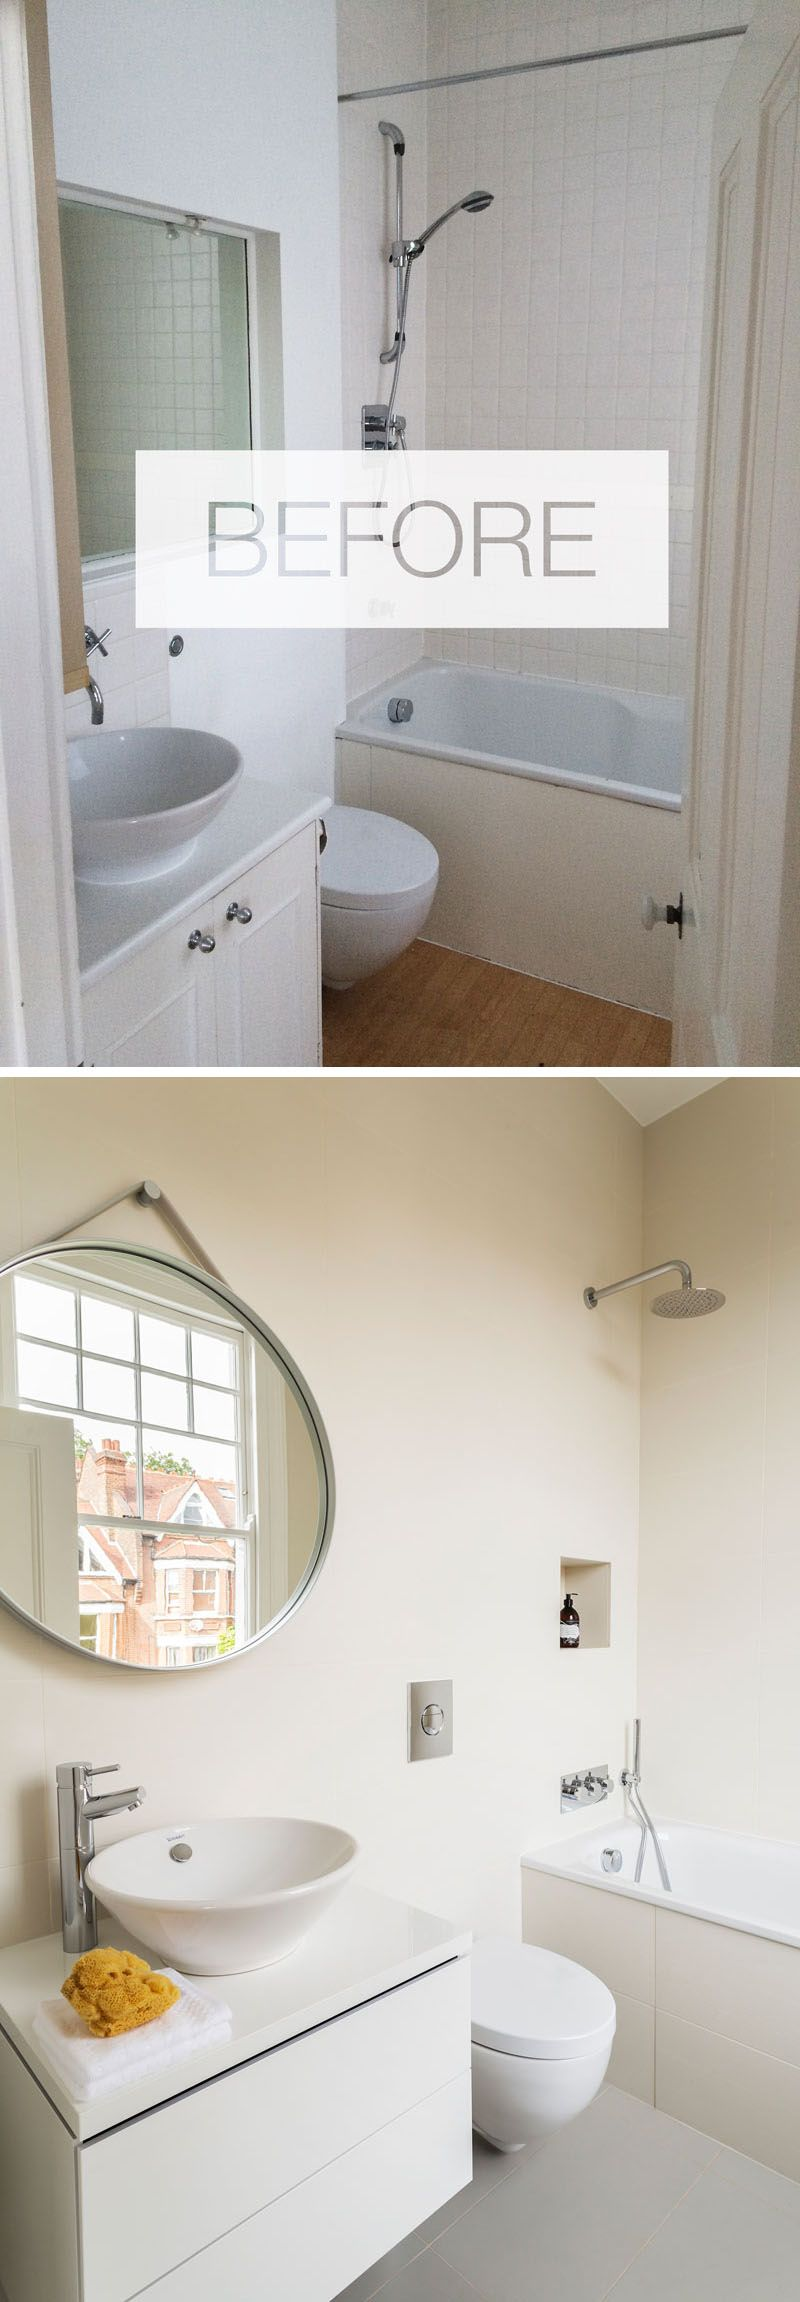 Before And After - A Victorian Townhouse Redesign In North London ...